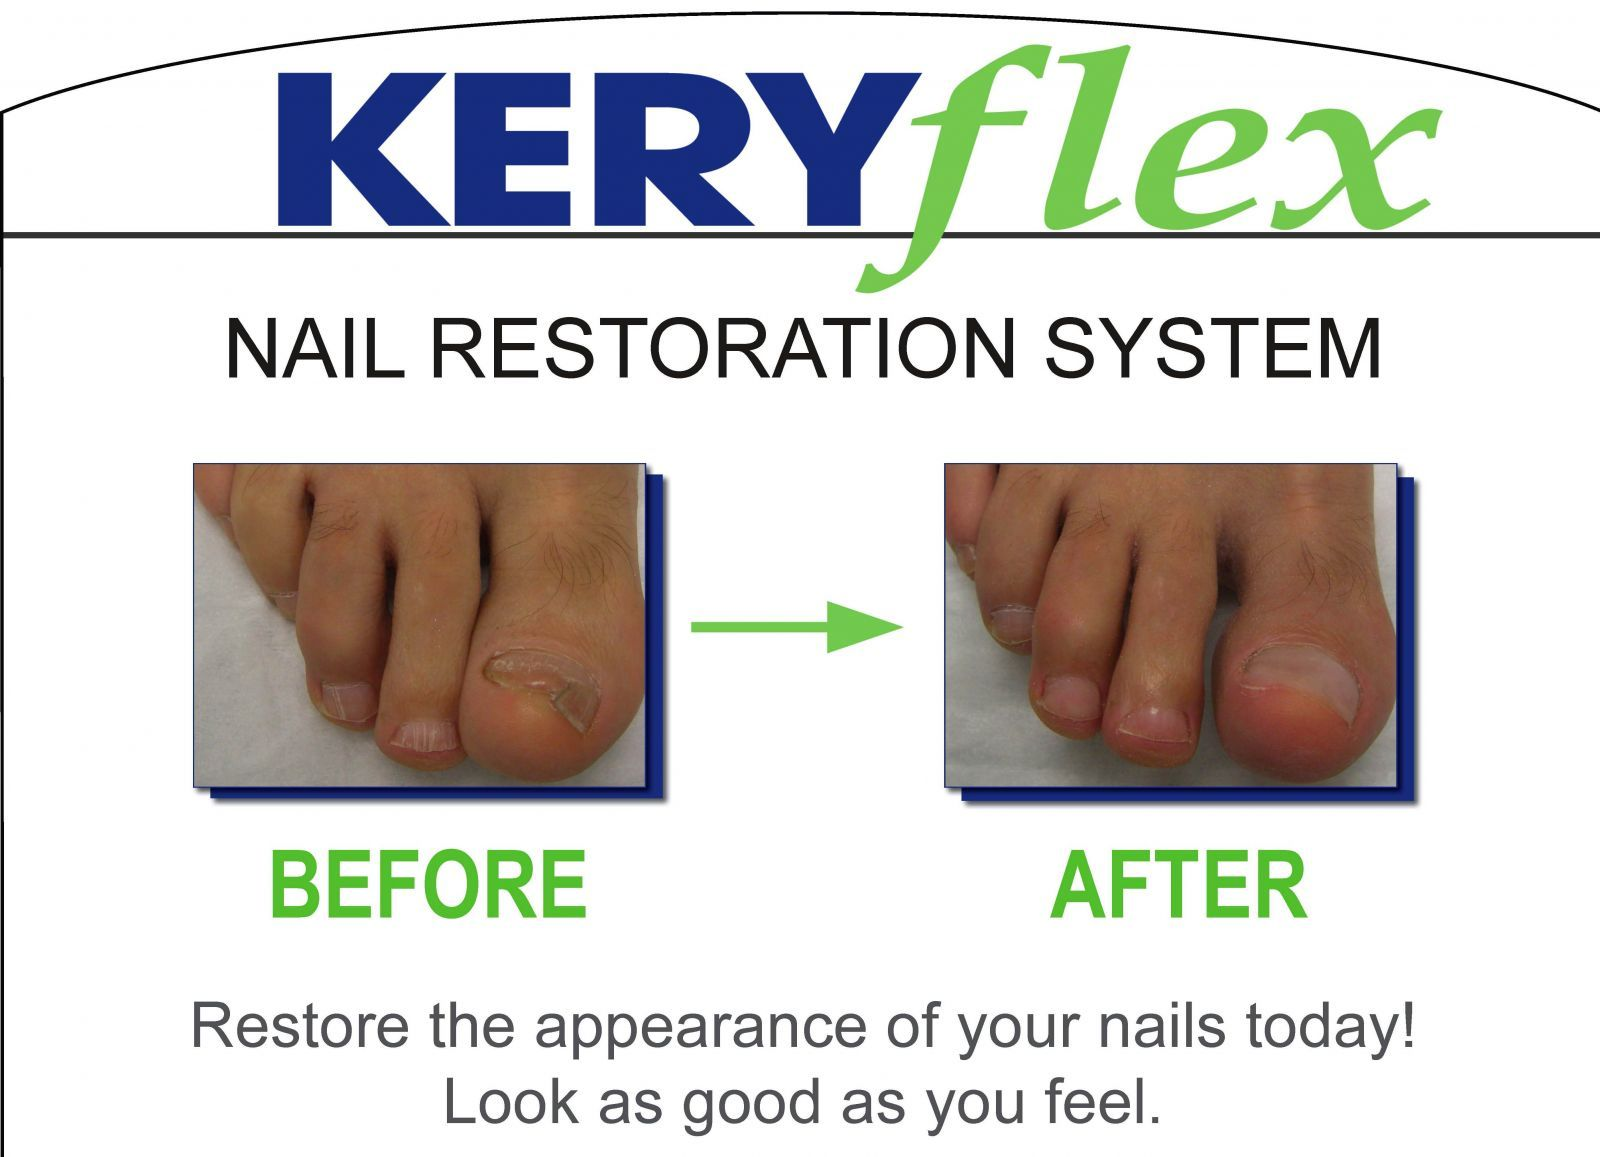 Did you know we offer keryflex nail restoration at an